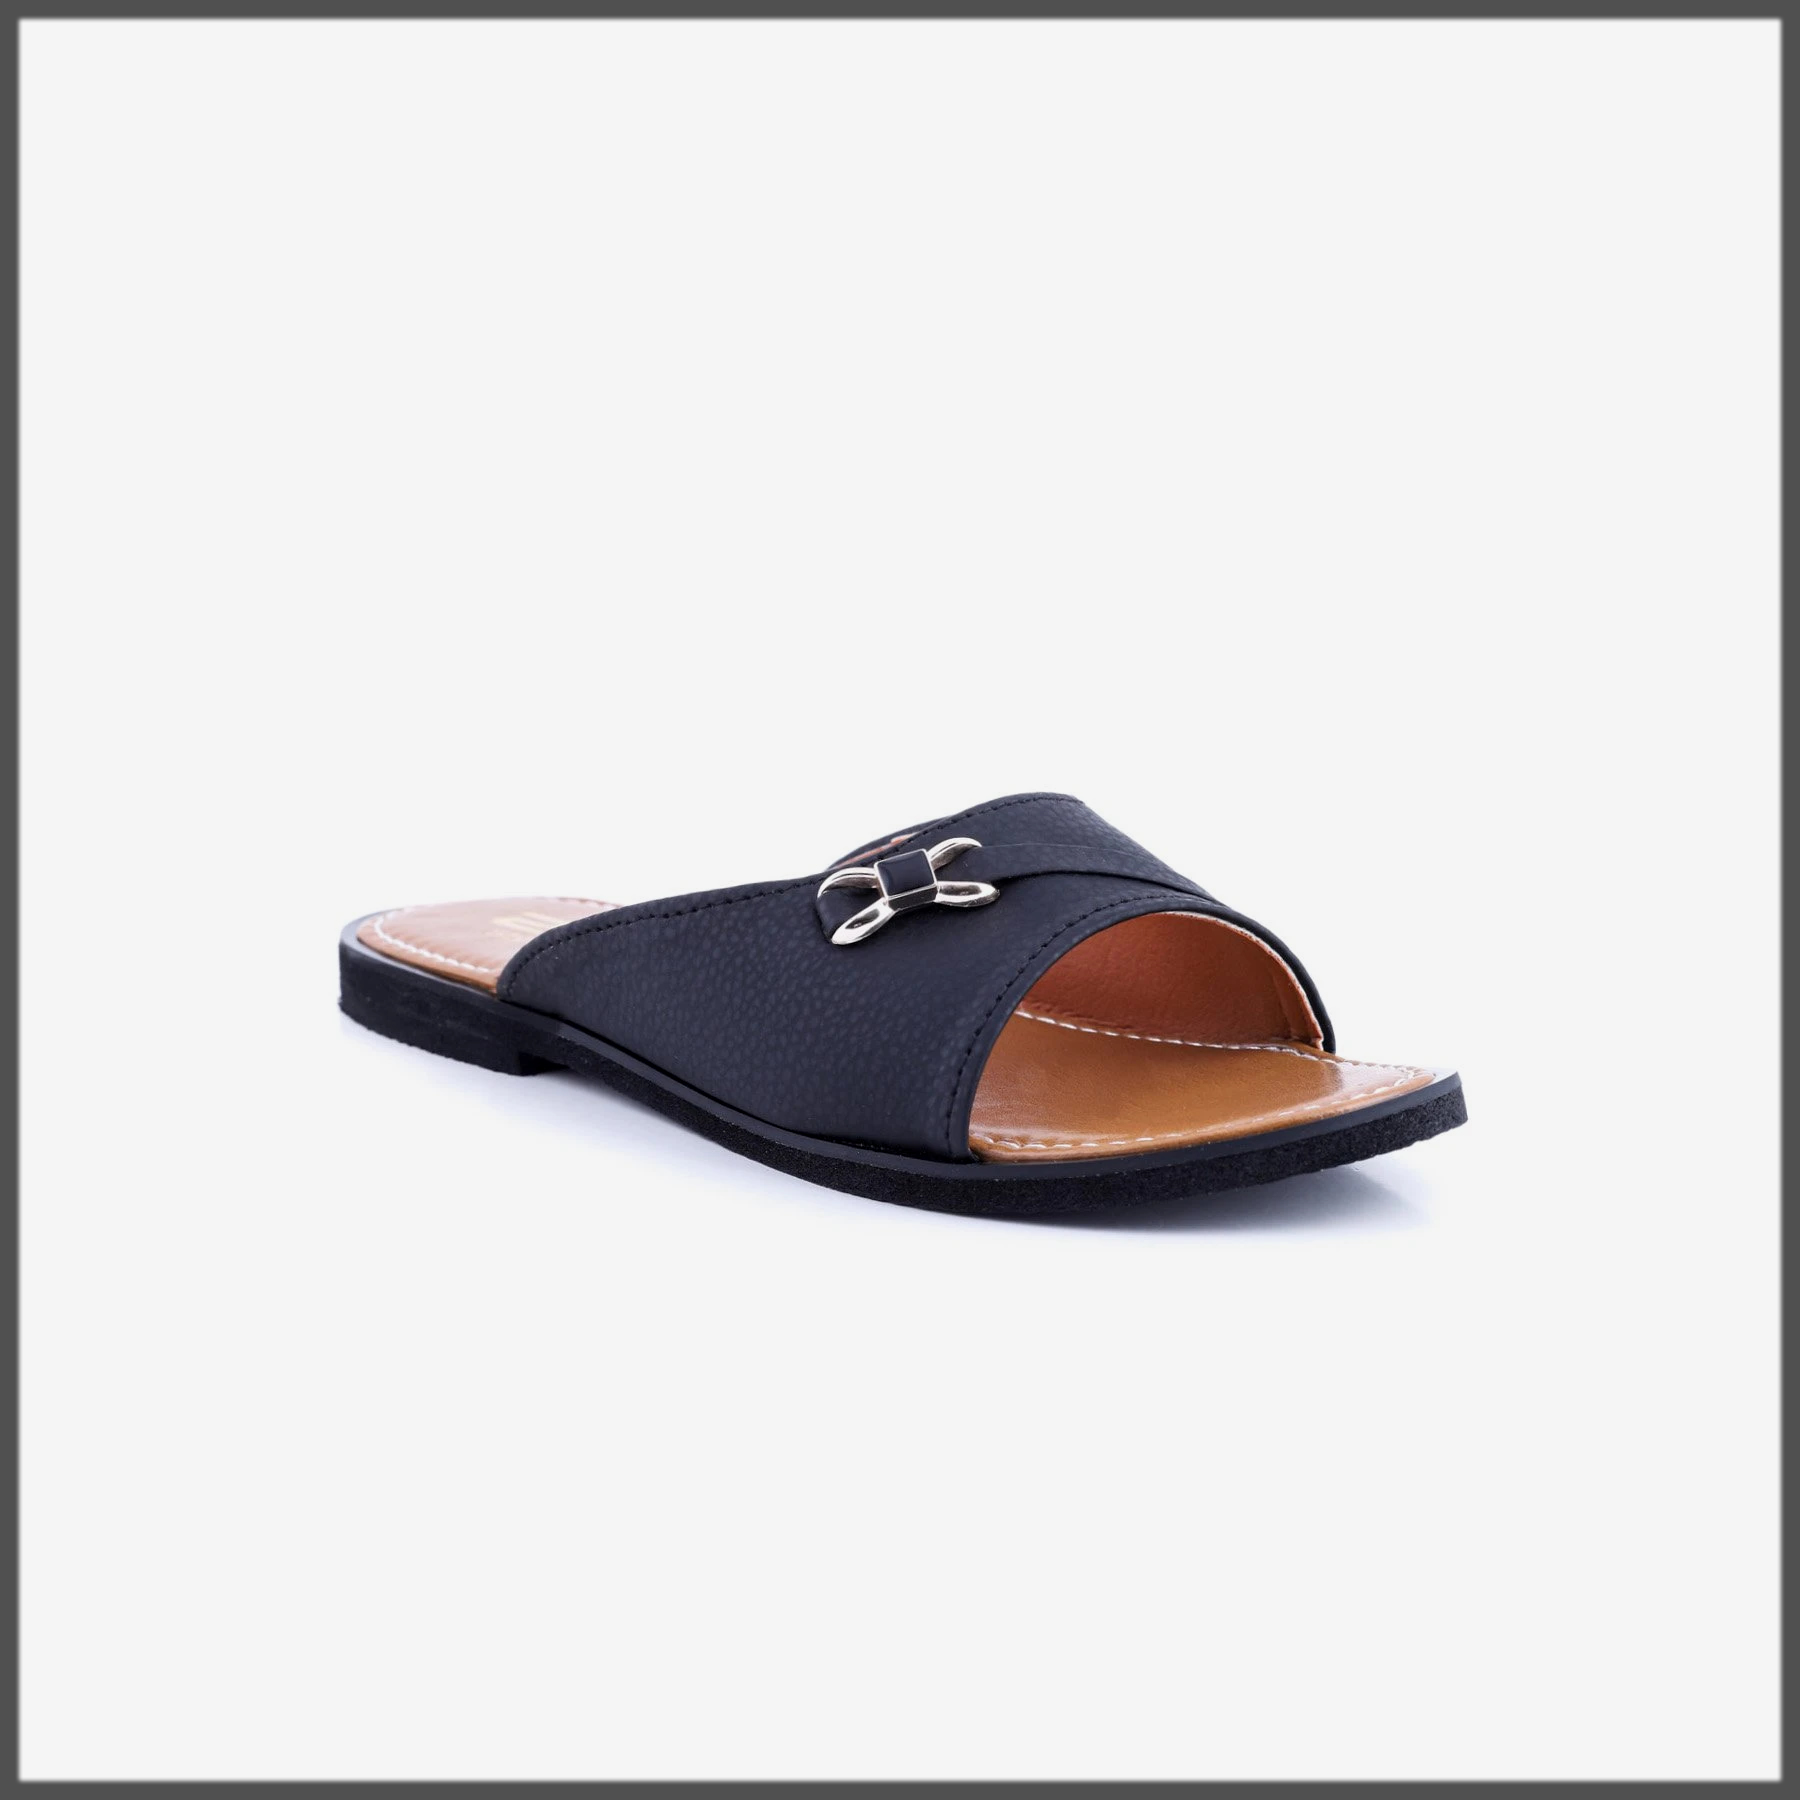 dazzling and classy ladies footwear